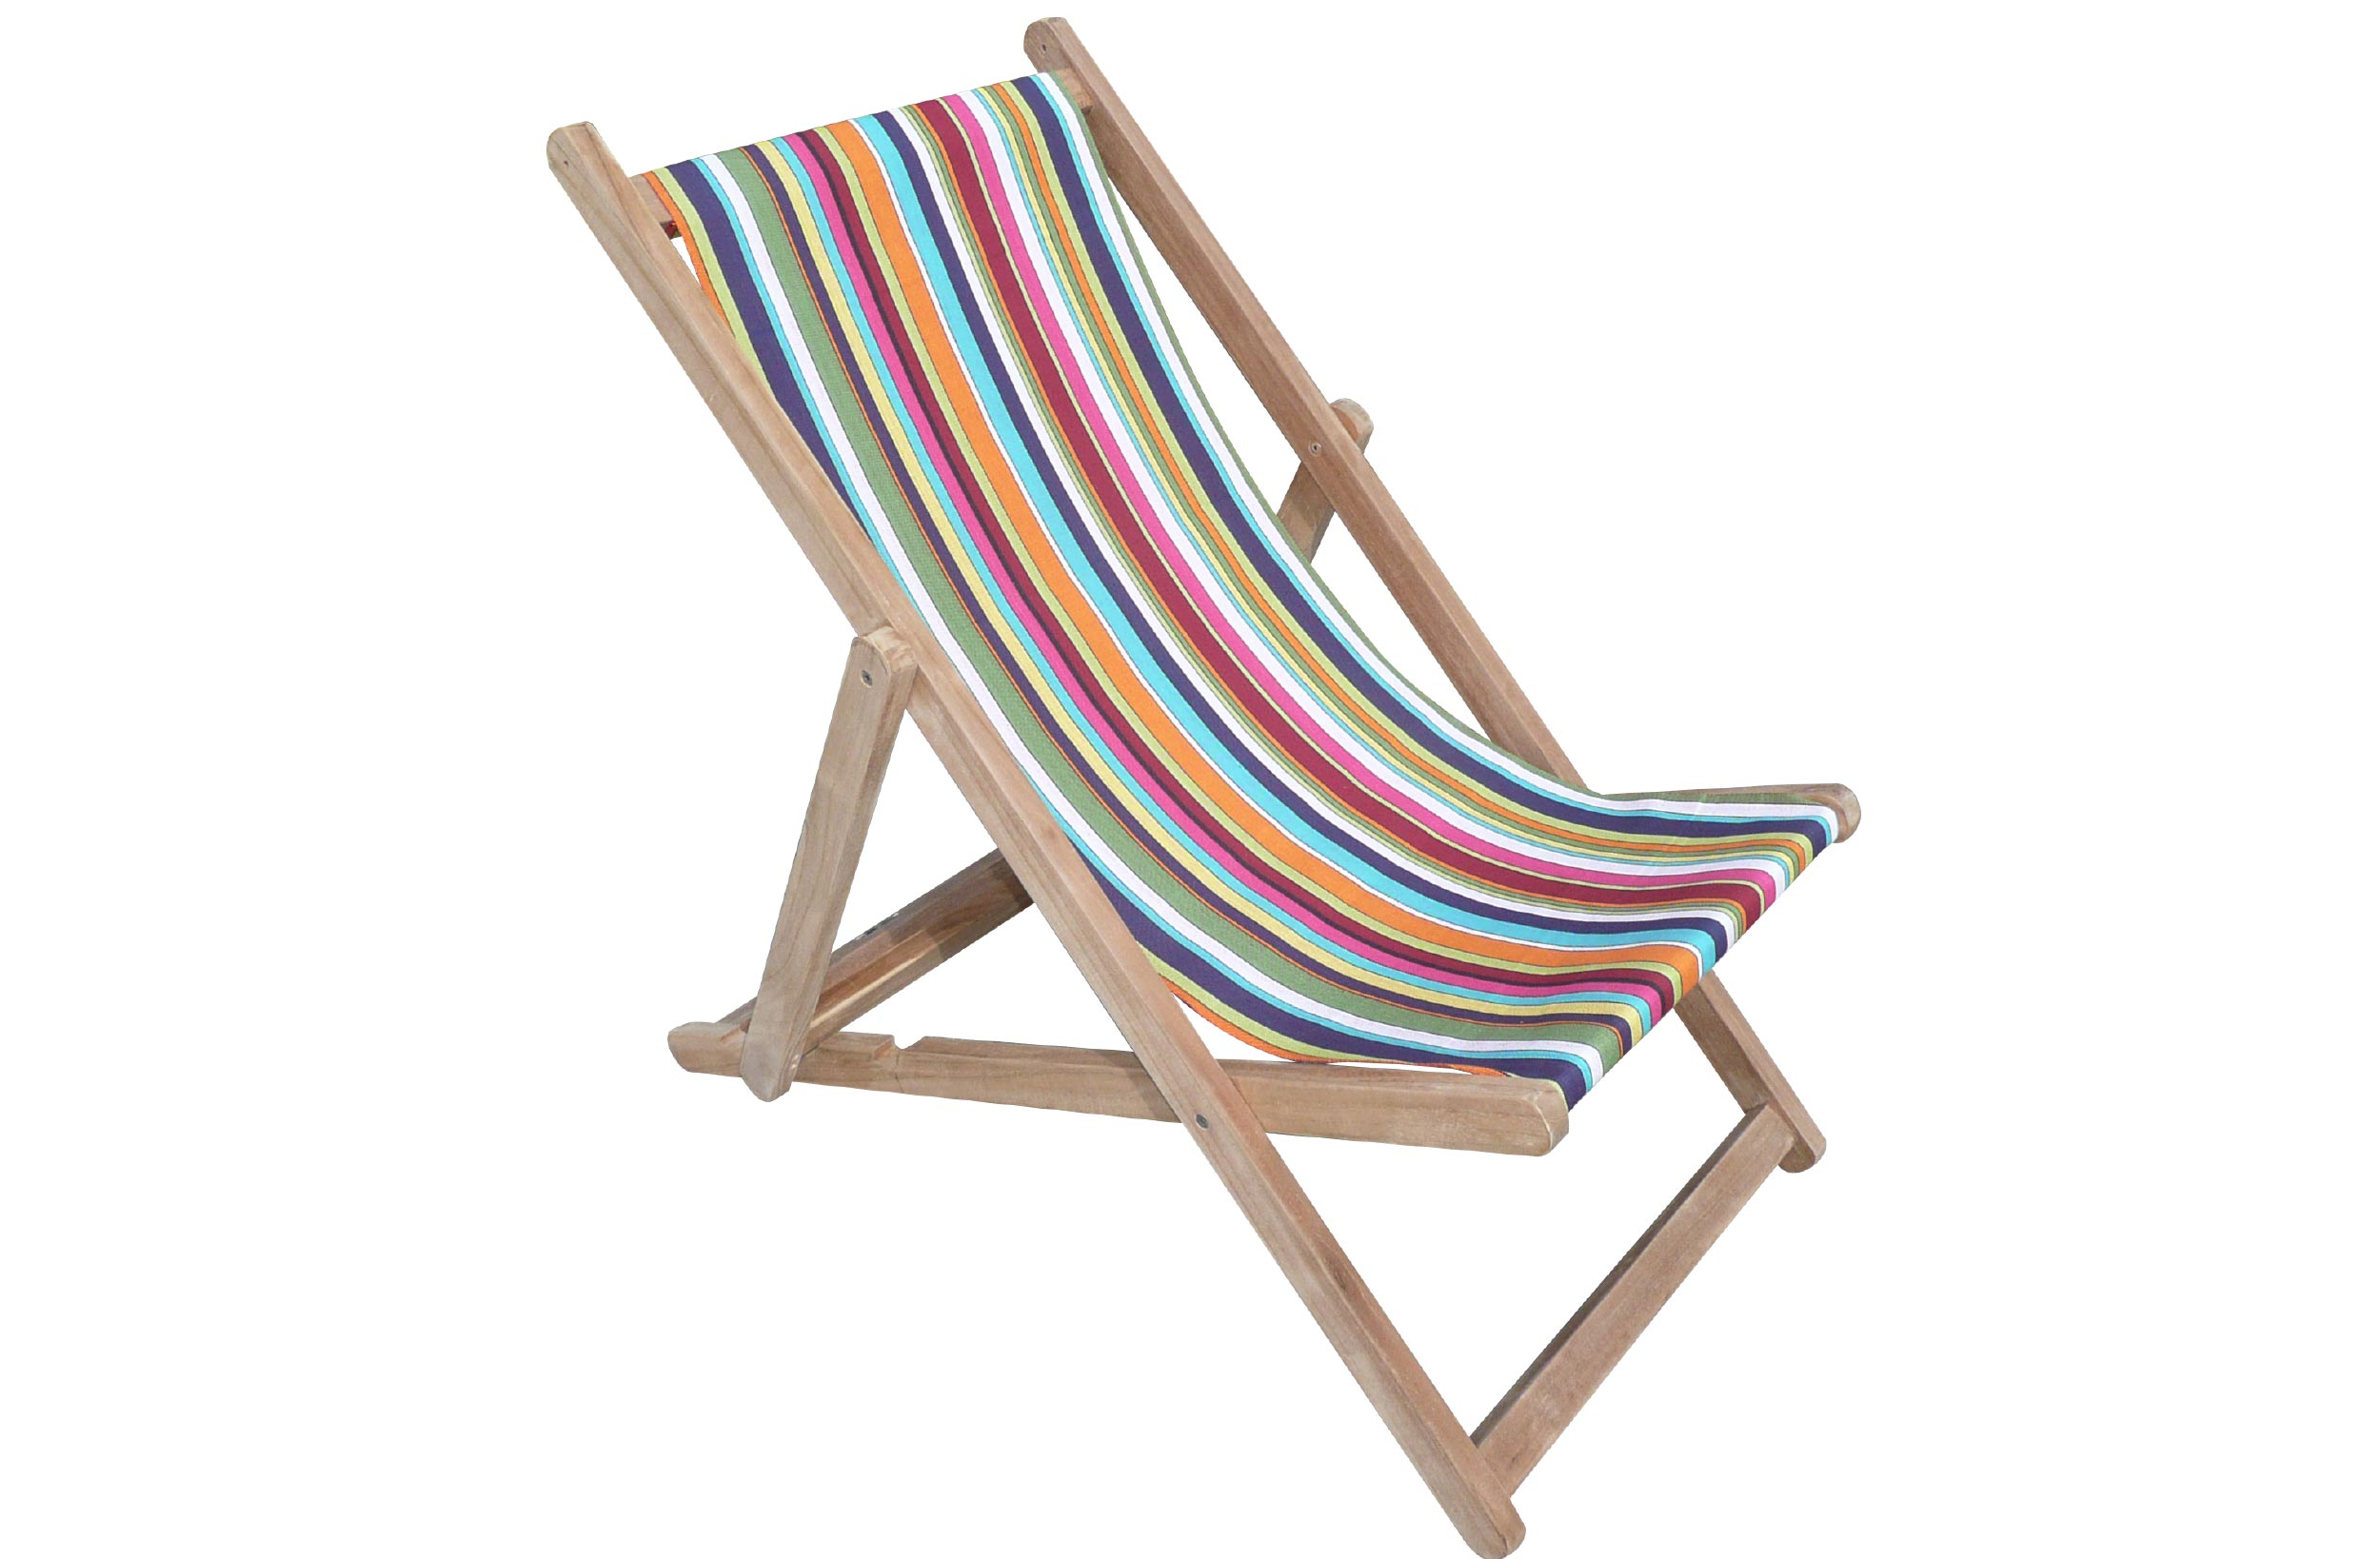 Rainbow Striped Deckchairs | Wooden Folding Deck Chairs Paintballing Stripes